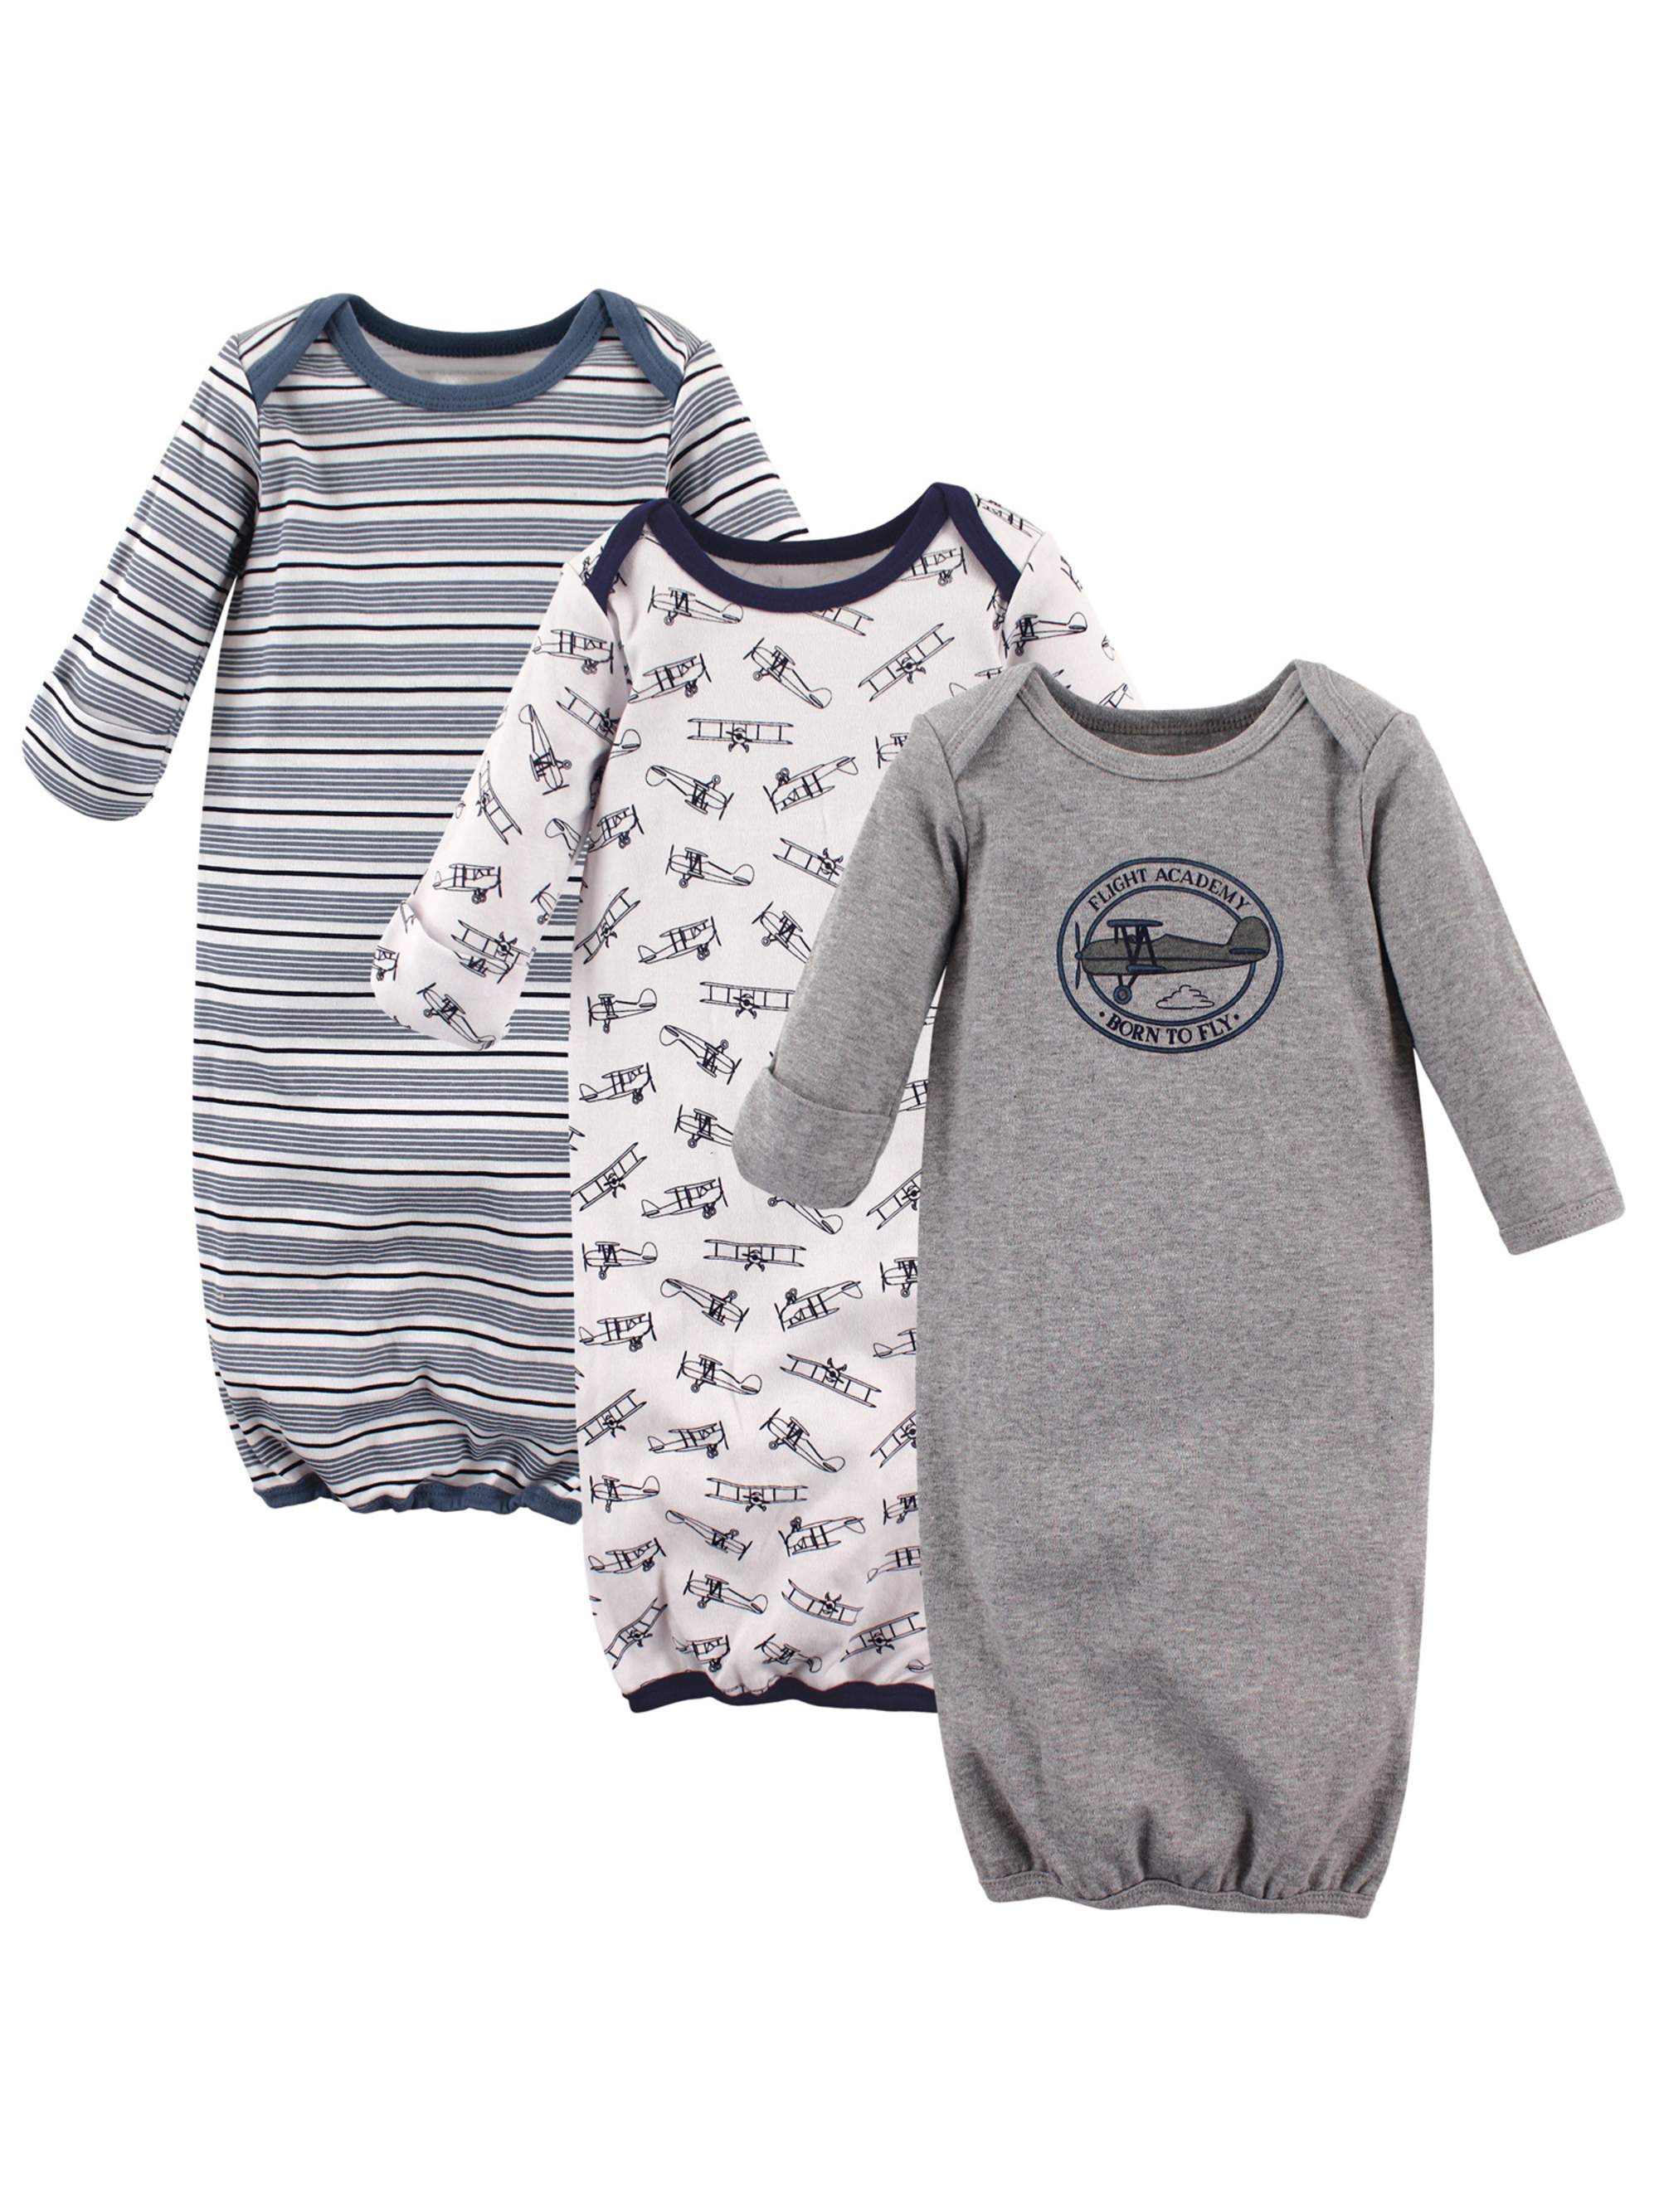 Unisex Baby Boy or Girl Gowns, 3-pack